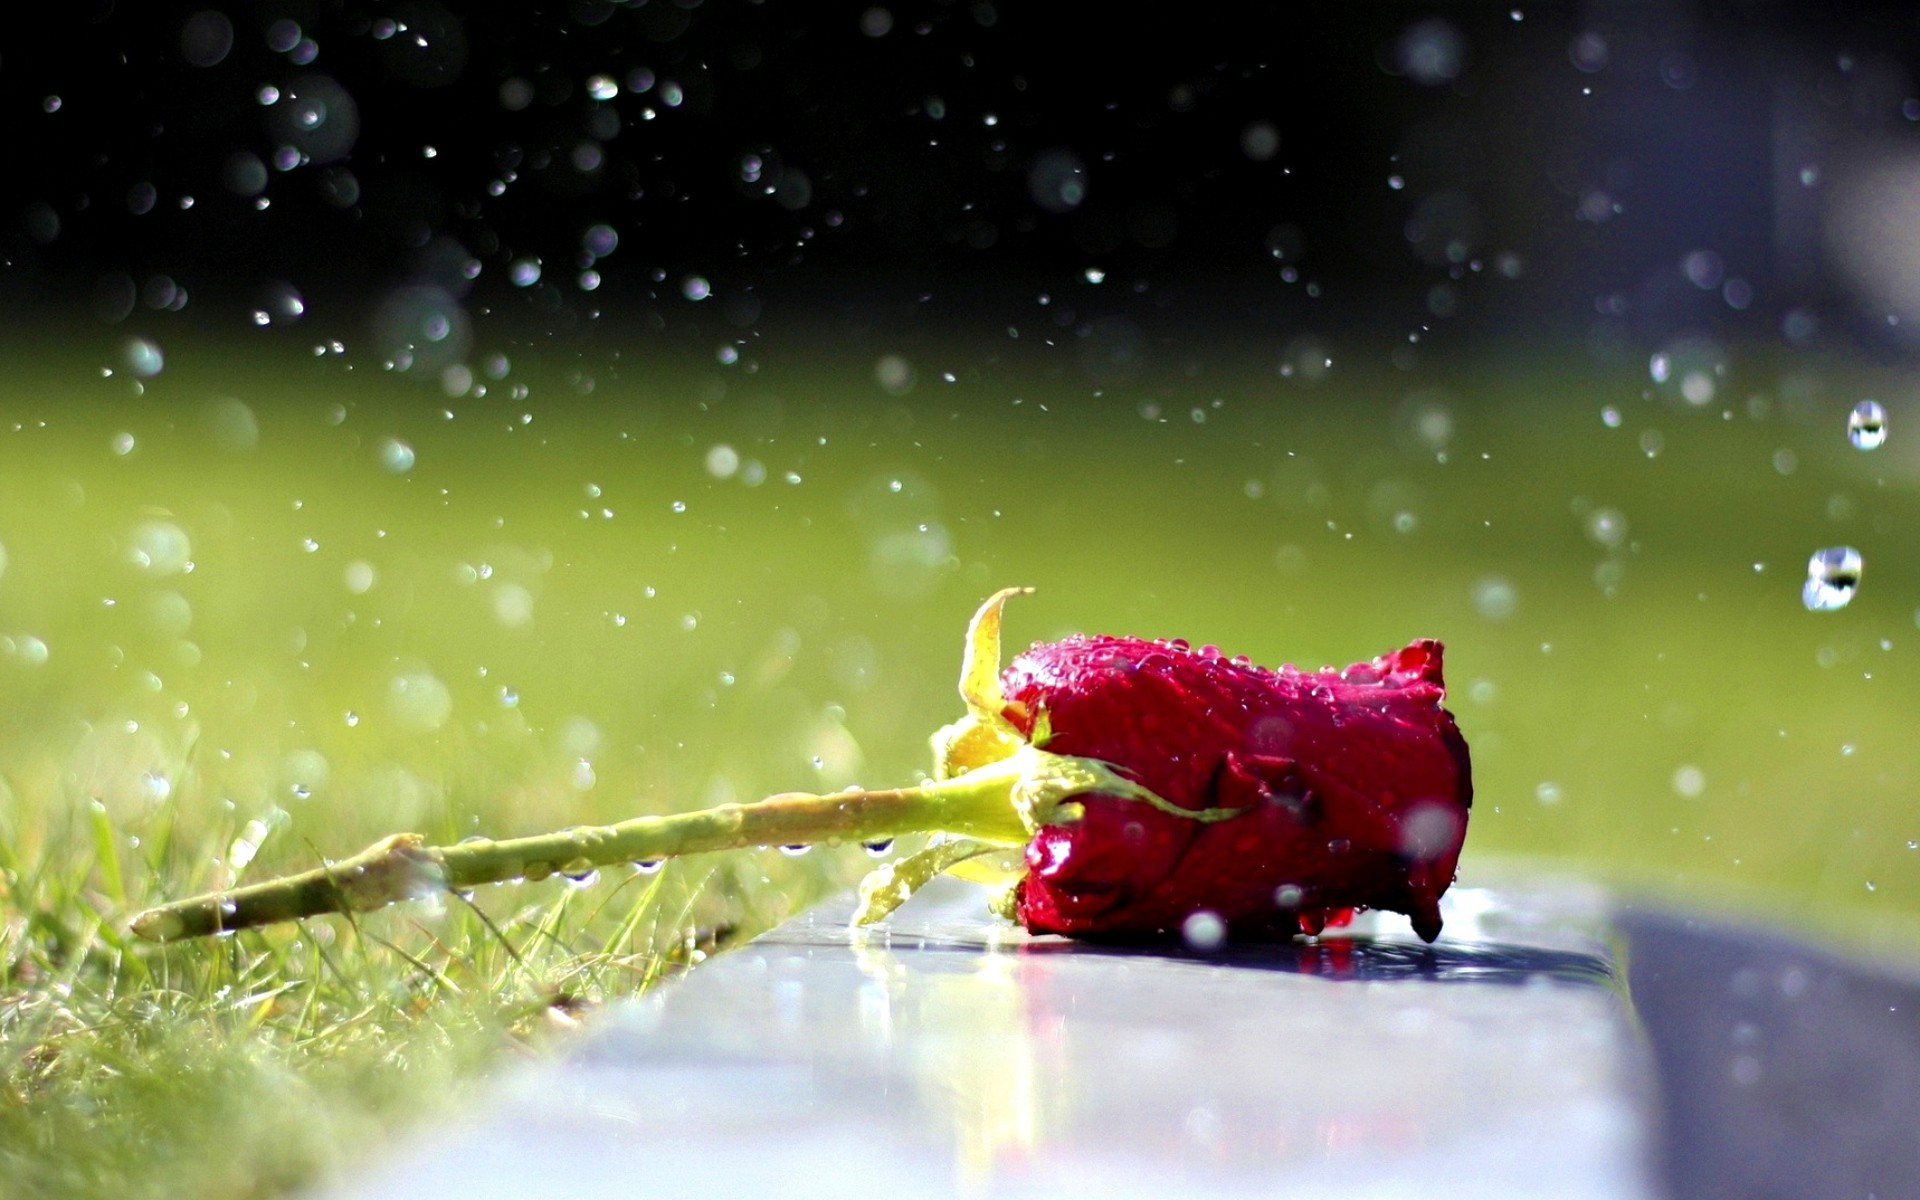 Wallpapers of raindrops 64 background pictures 1920x1200 raindrops wallpaper raindrops on roses hd wallpapers thecheapjerseys Images